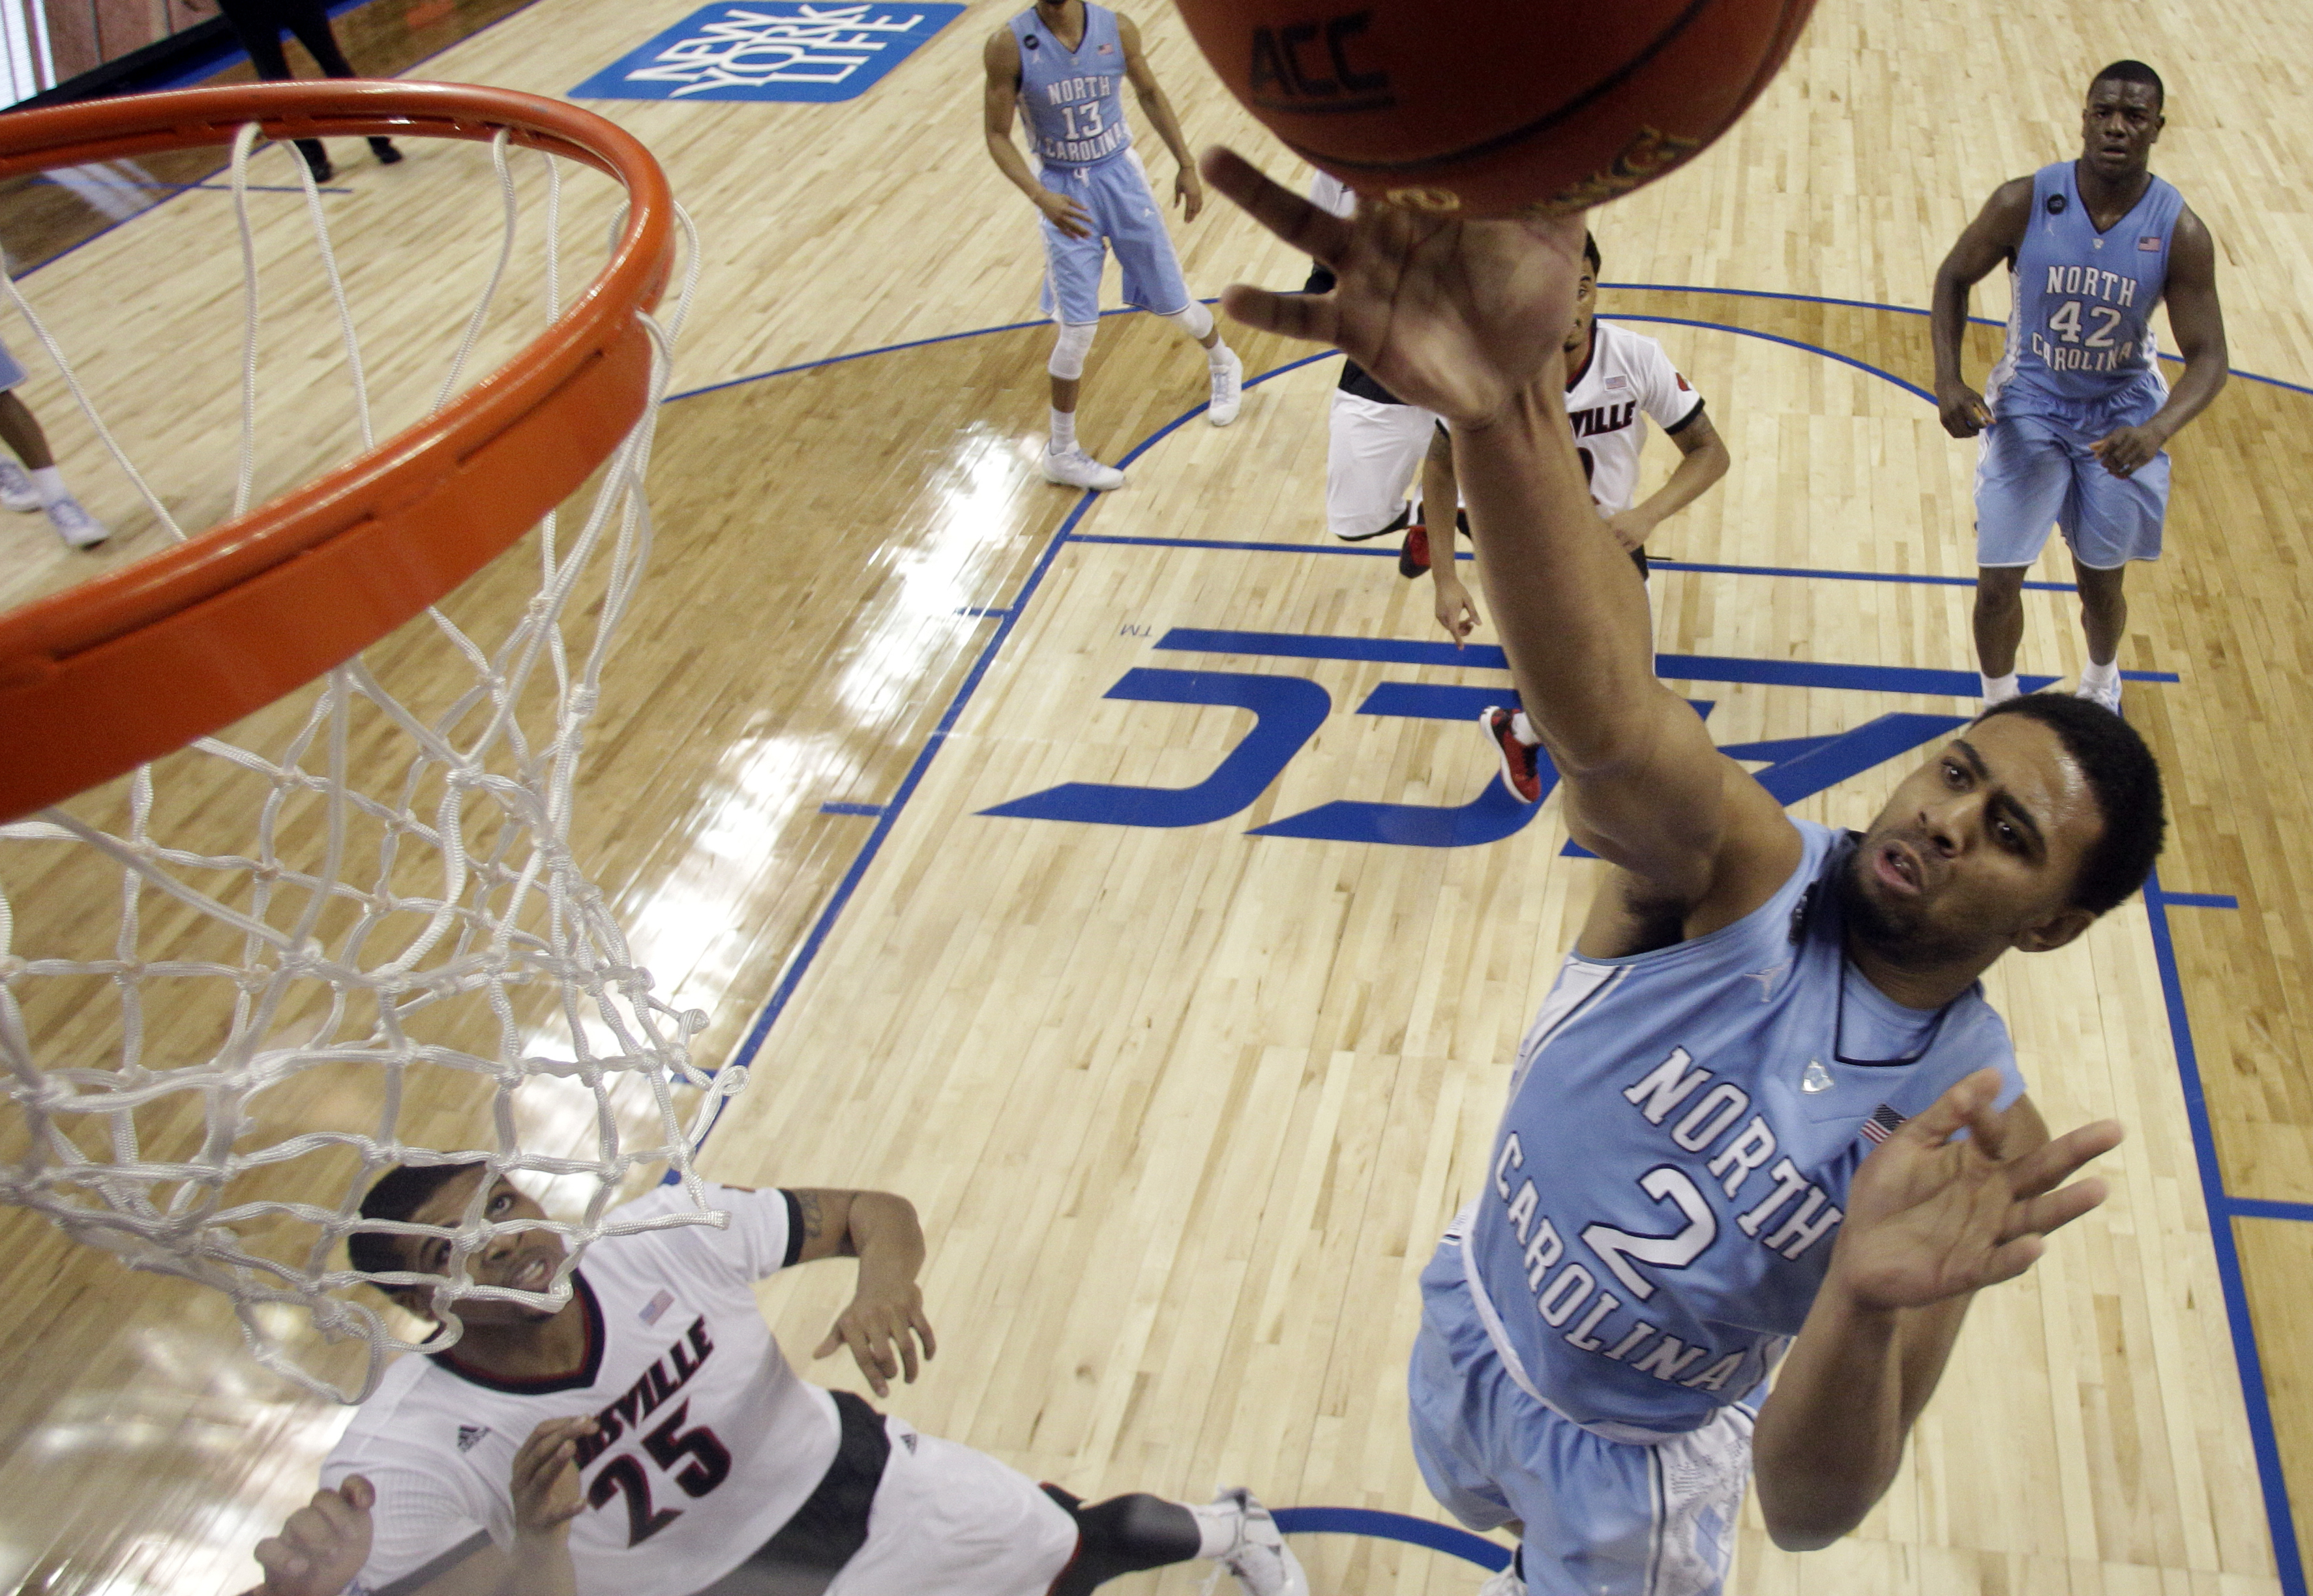 FILE - In this March 12, 2015, file photo, North Carolina's Joel Berry II (2) shoots against Louisville during the first half of an NCAA college basketball game in the quarterfinals of the Atlantic Coast Conference tournament in Greensboro, N.C. Berry sai